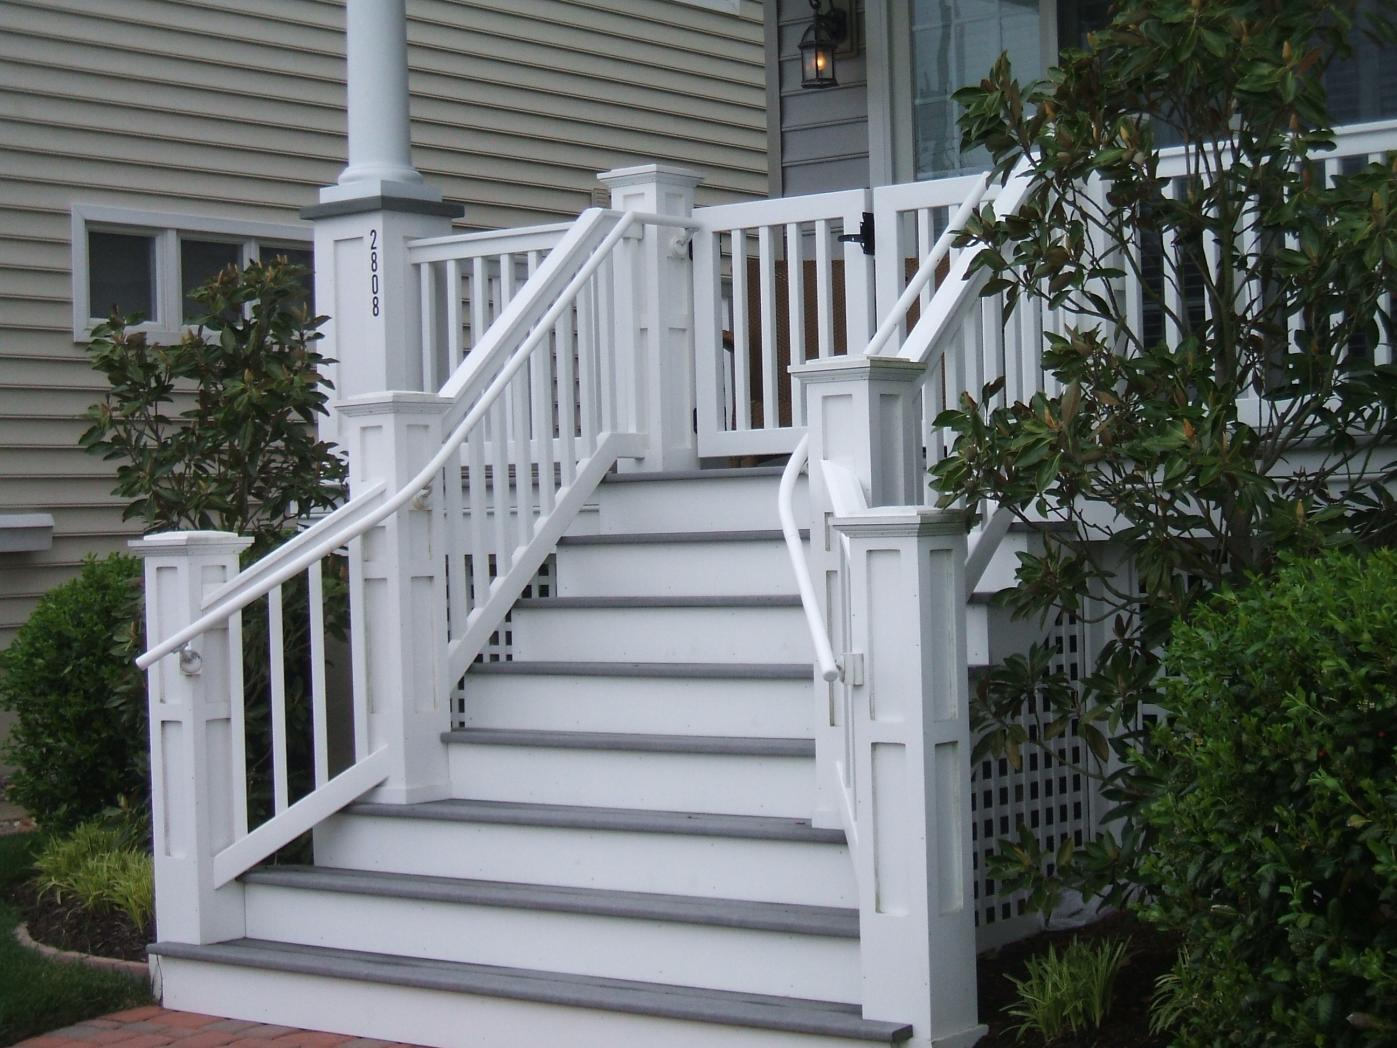 What Material Is Used For White Frame Fascia And Stair Risers?